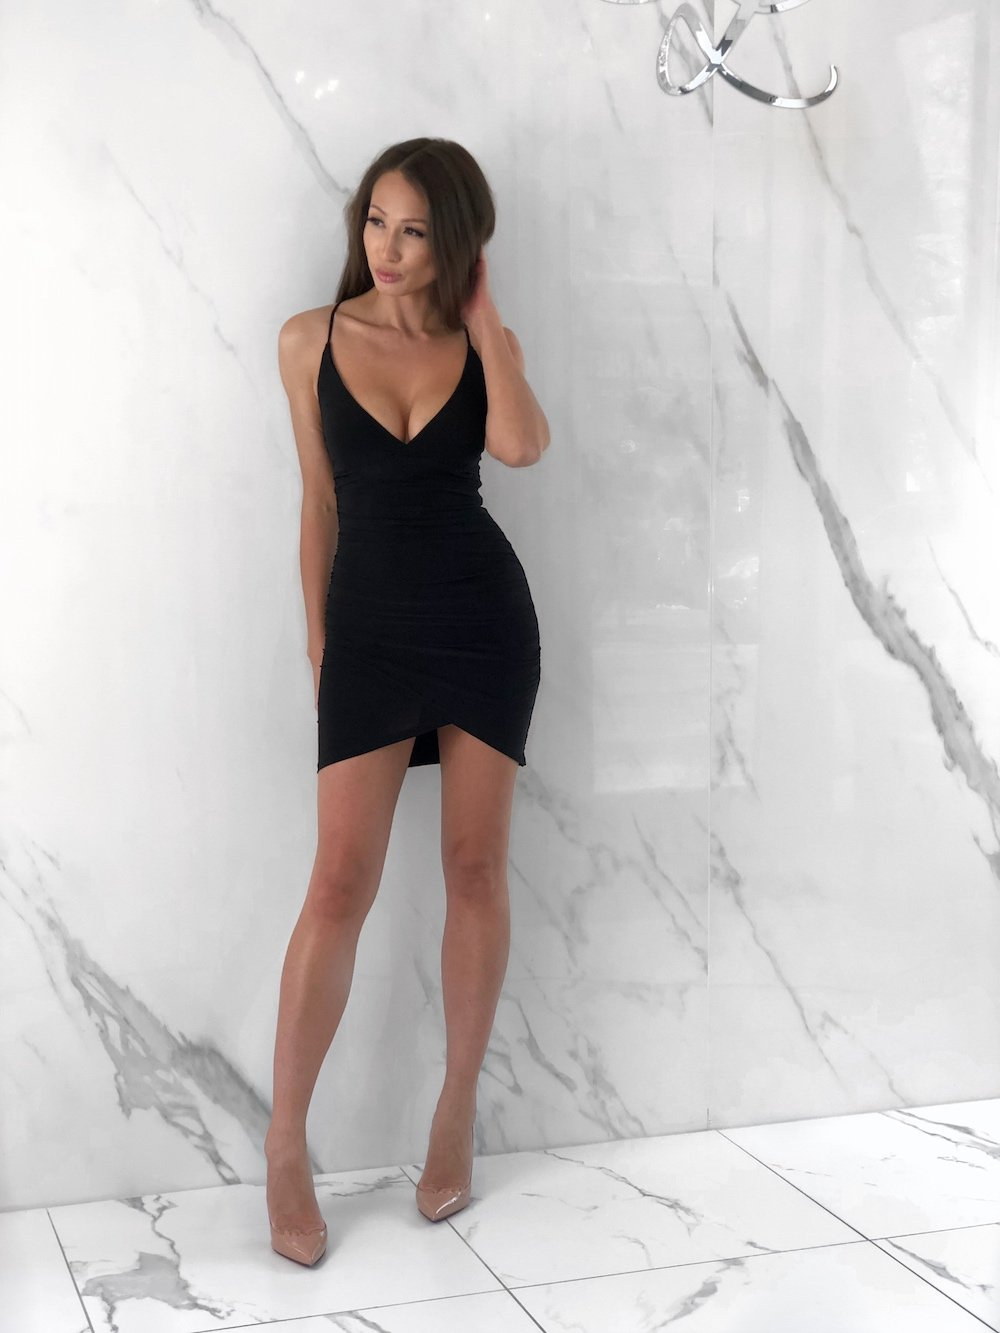 Natalie Dress, Women's Black Dresses